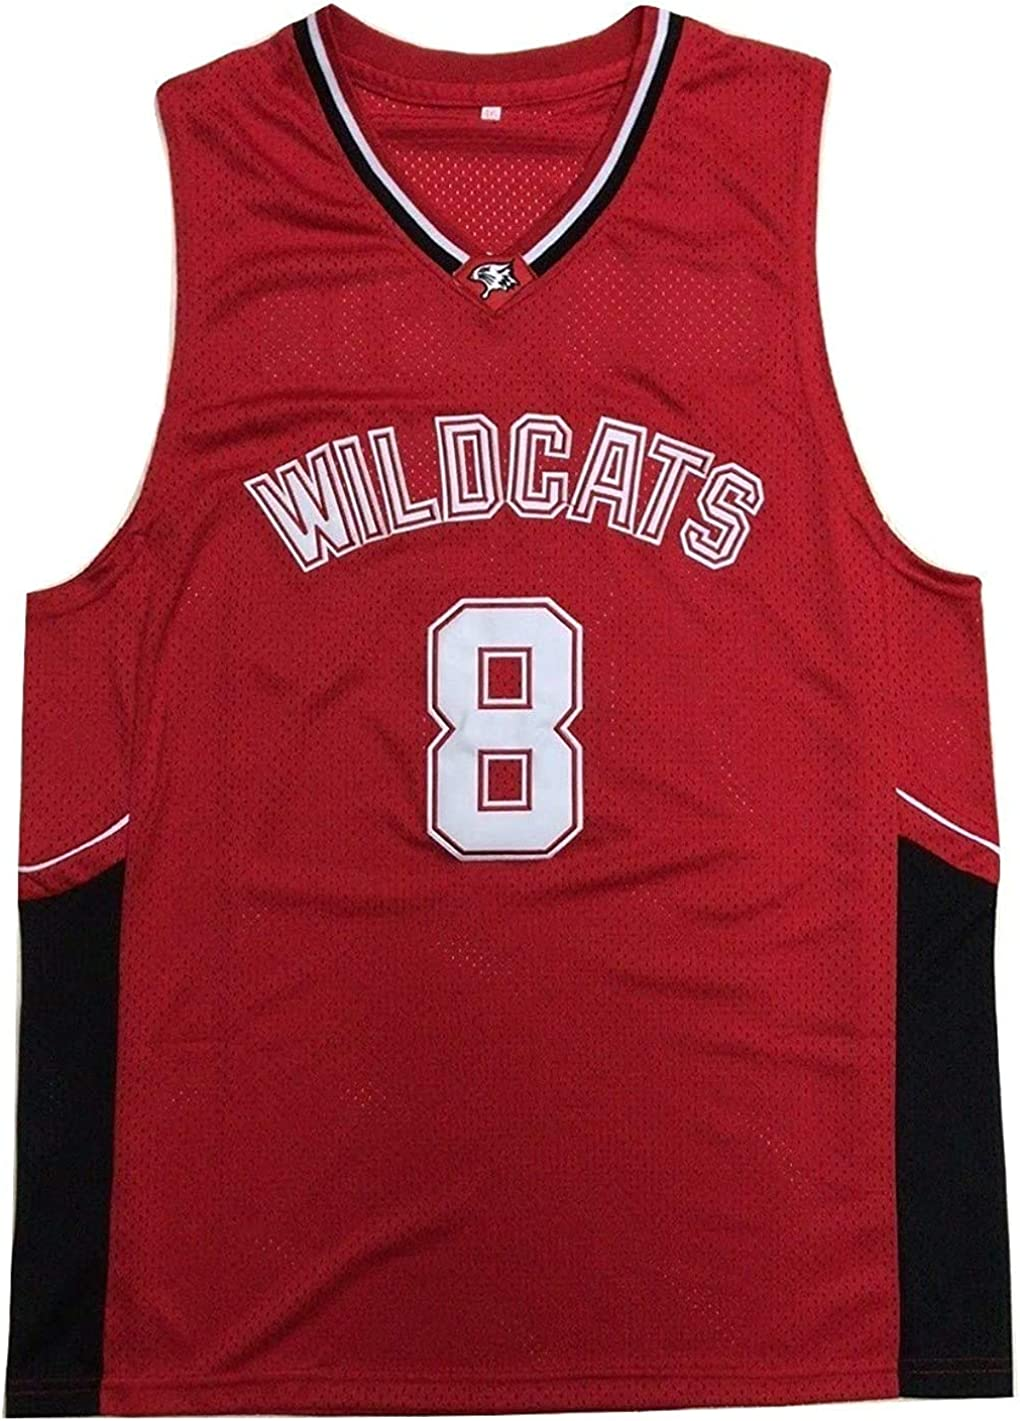 Chad Danforth 8 East High School Wildcats Red Basketball Jersey HSM3 Tee